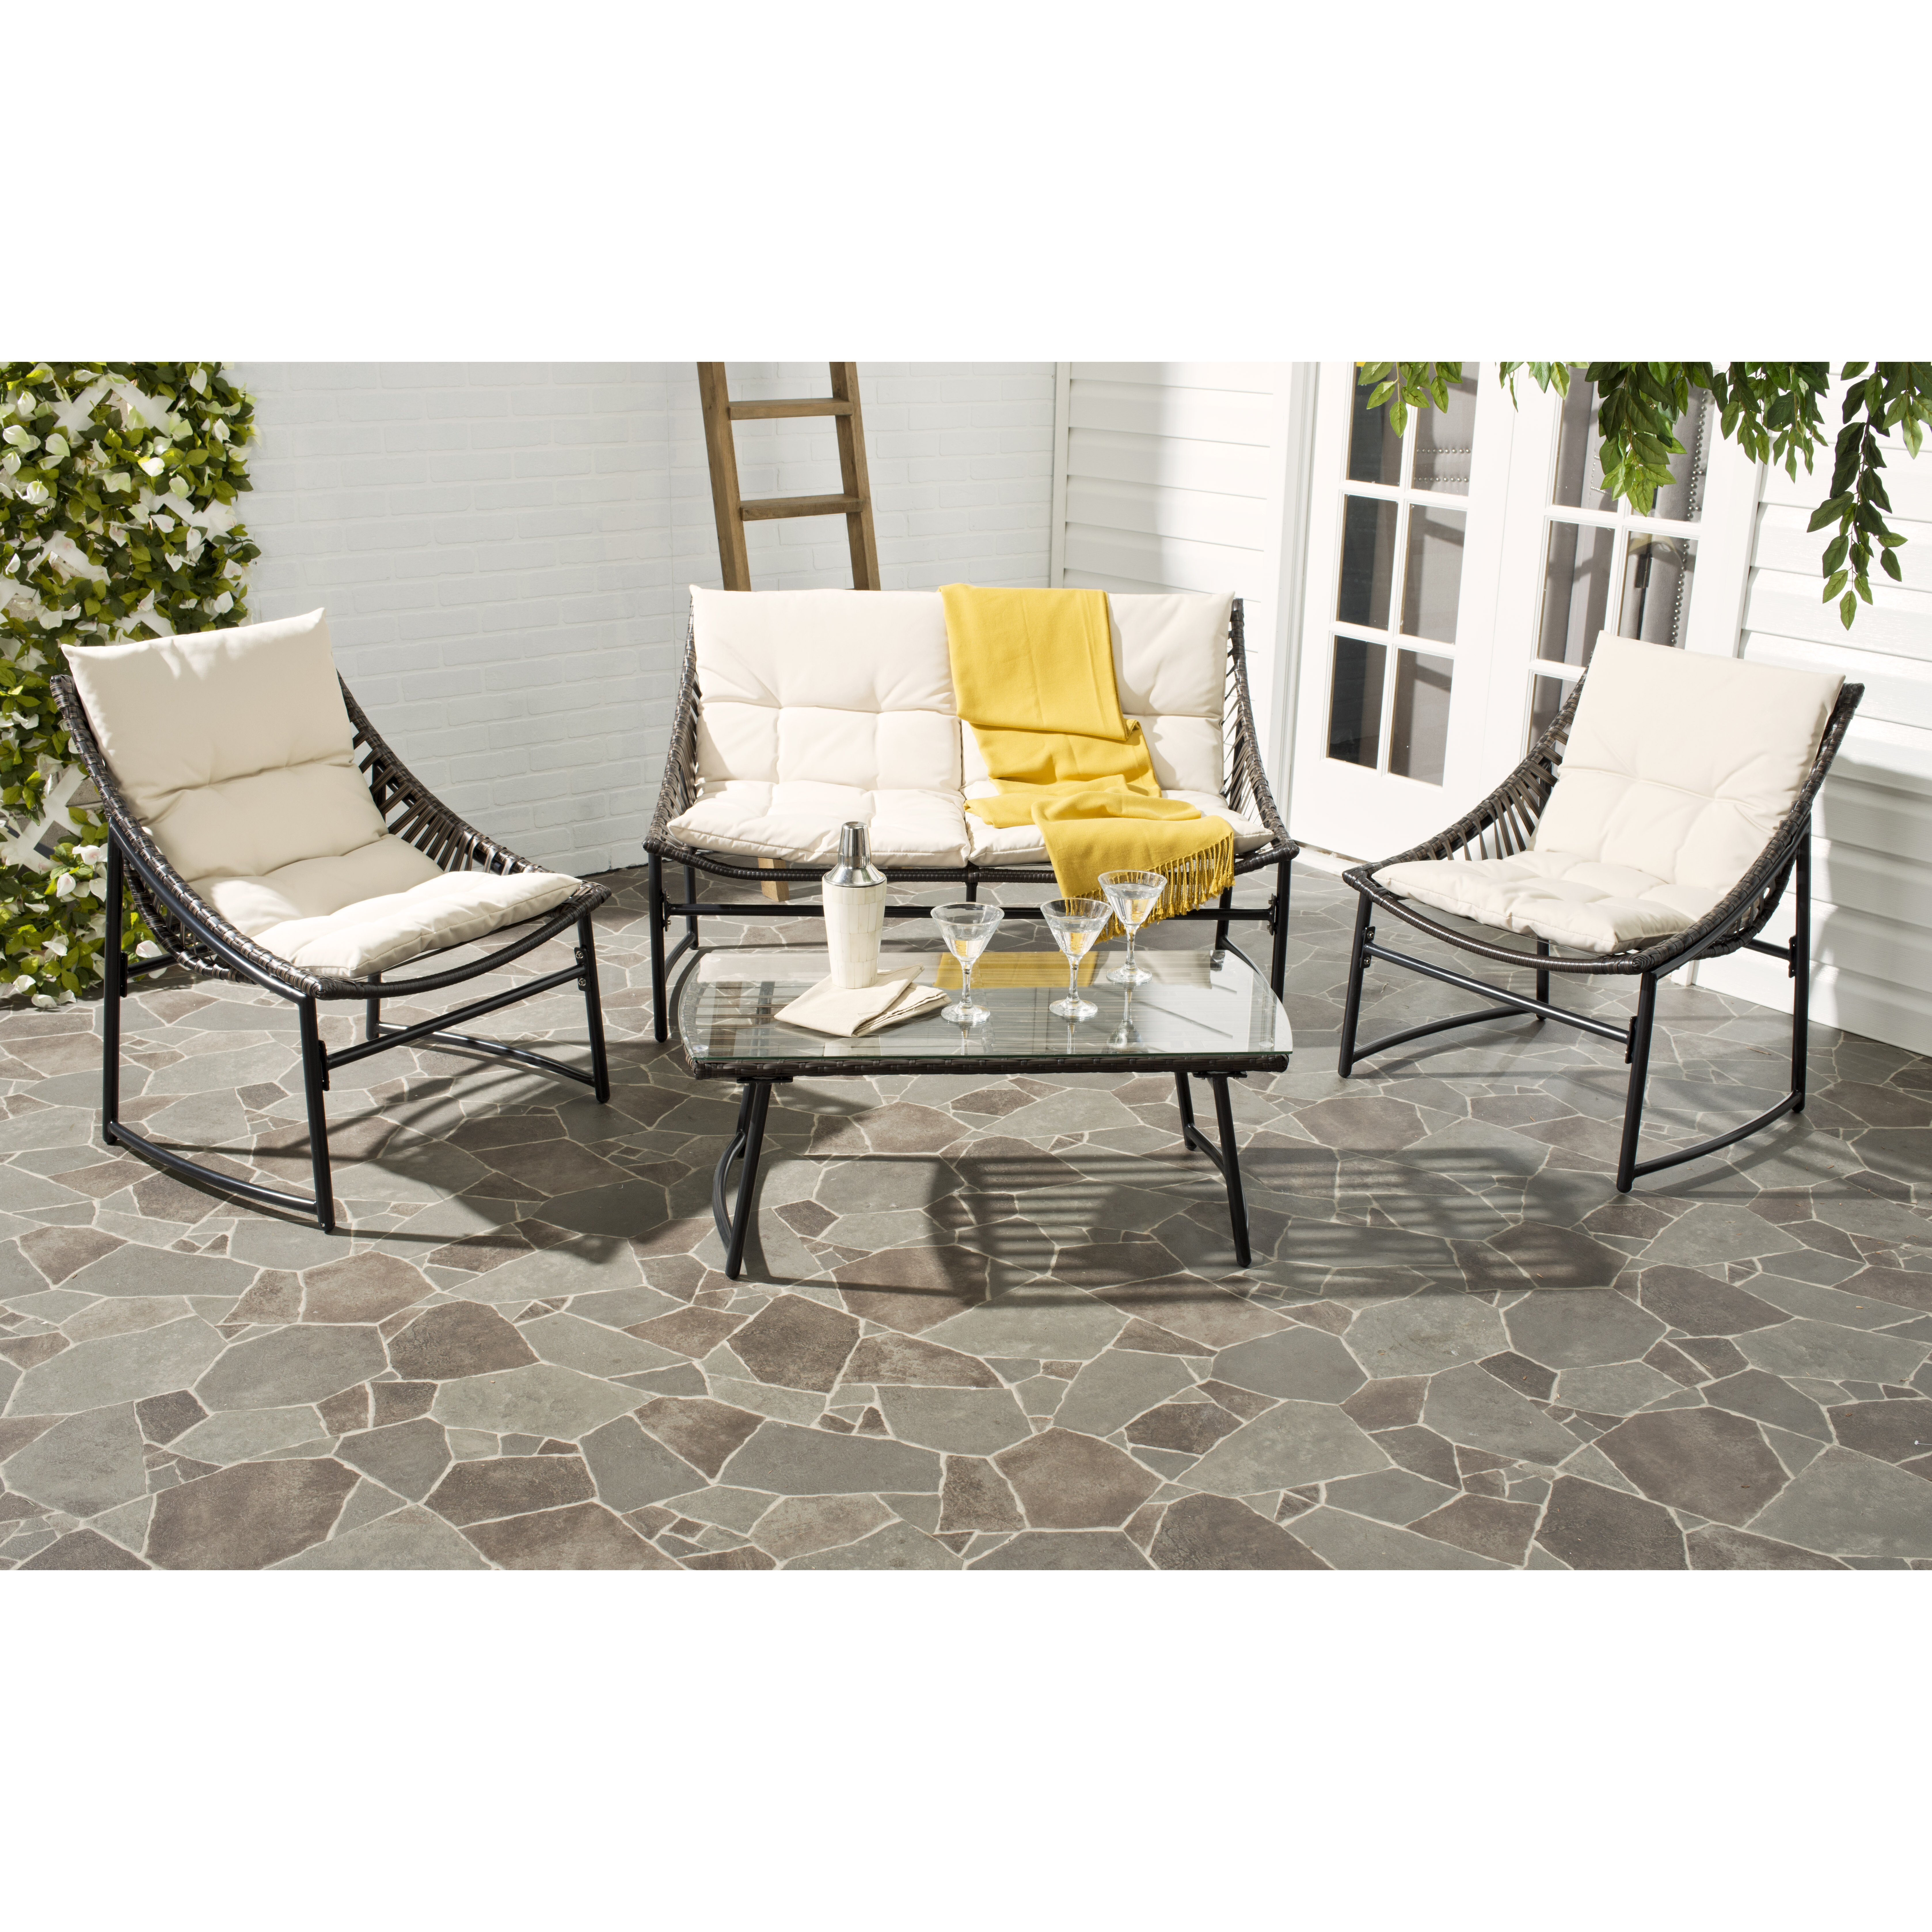 Safavieh 4 Piece Breanna Patio Group Set with Cushion & Reviews